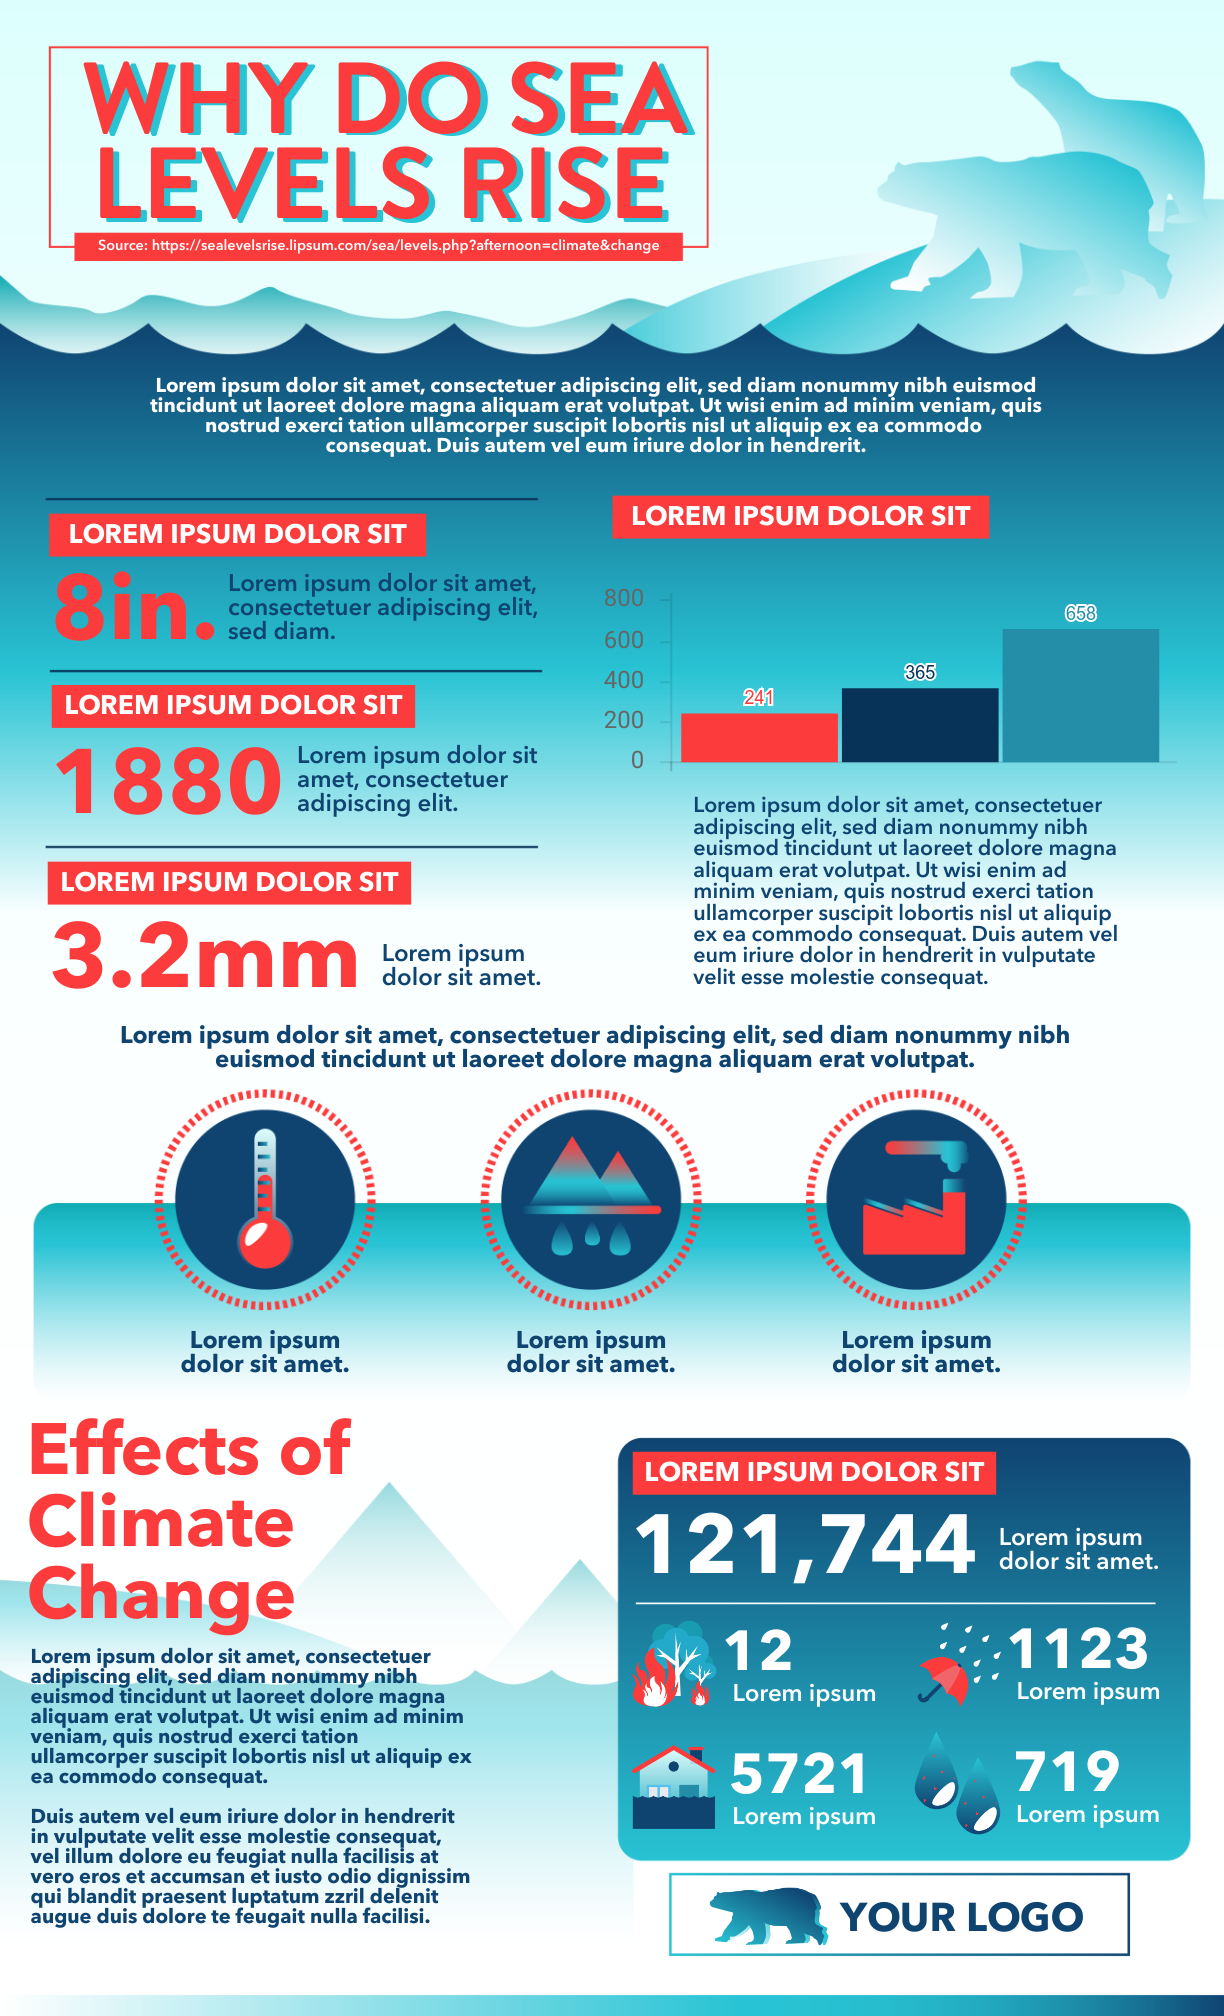 an infographic about why do sea levels rise